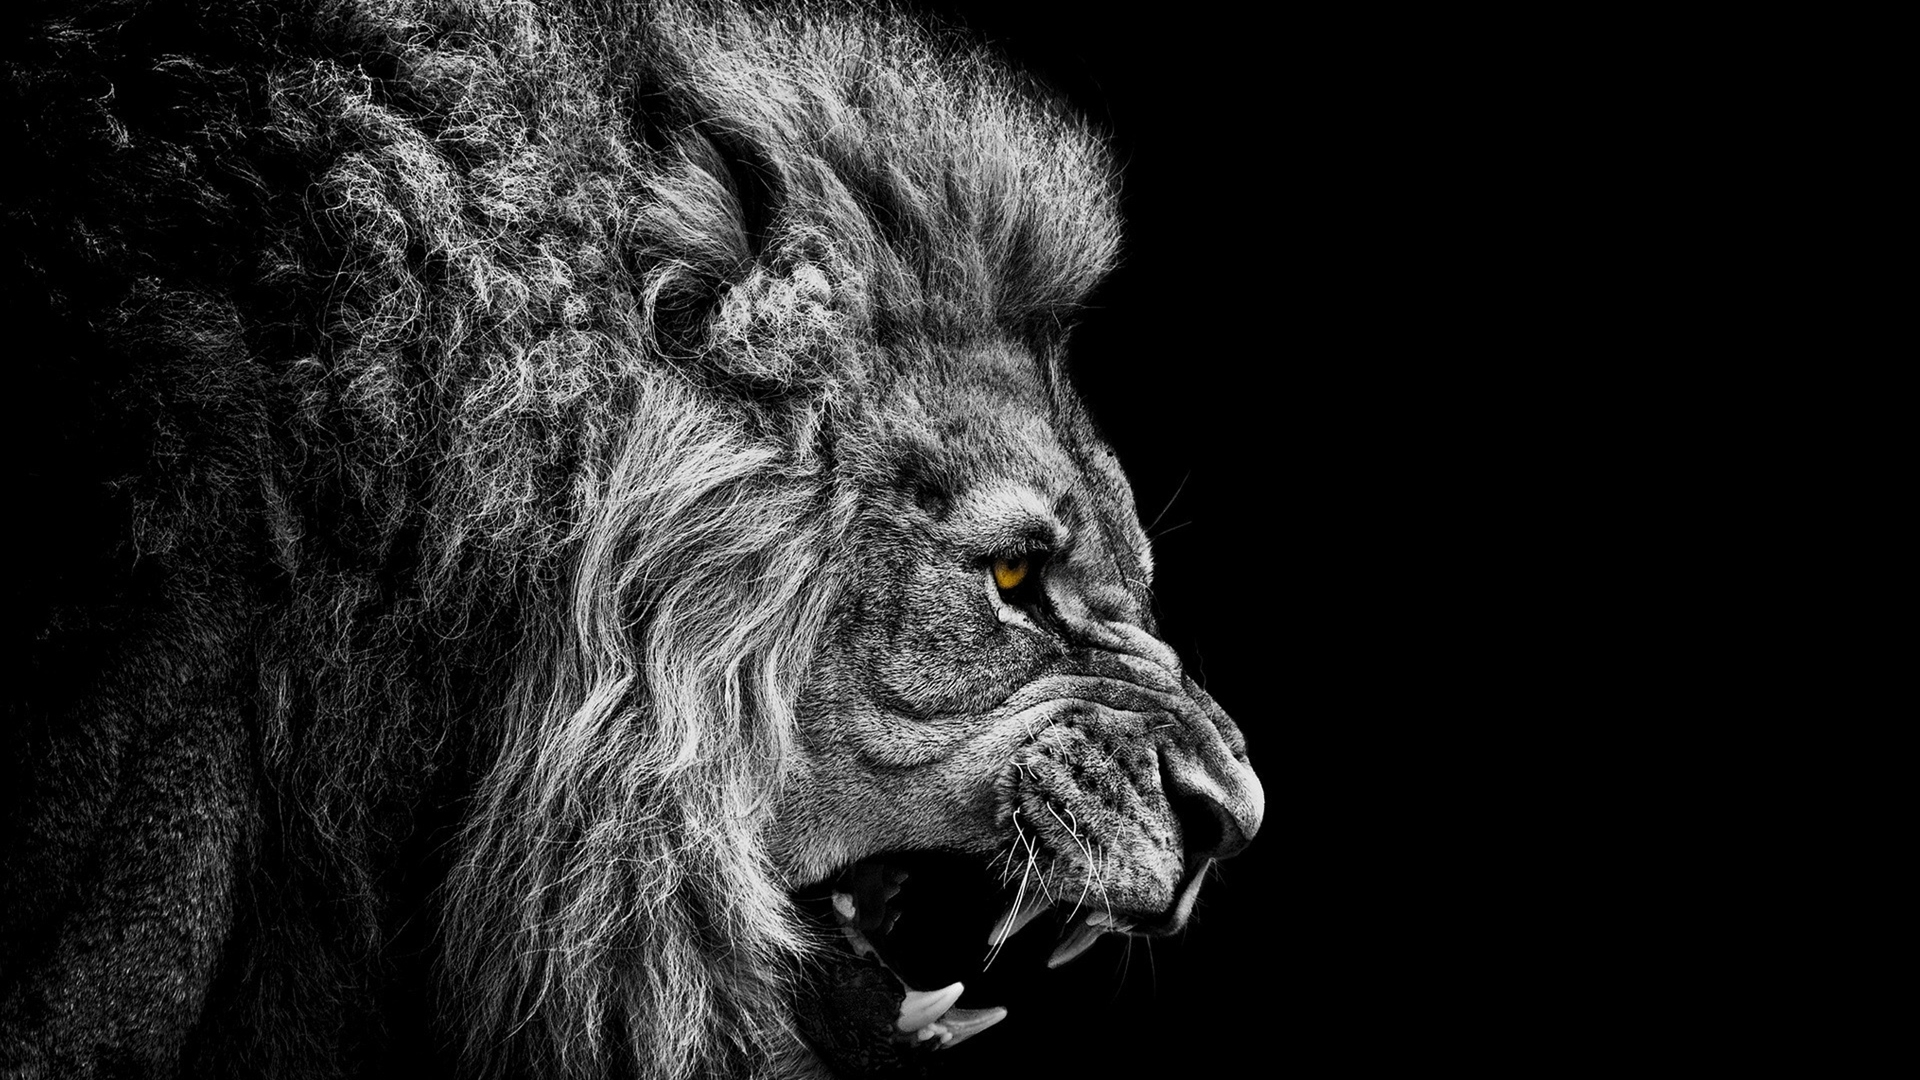 black and white lion hd wallpapers 19165 - baltana